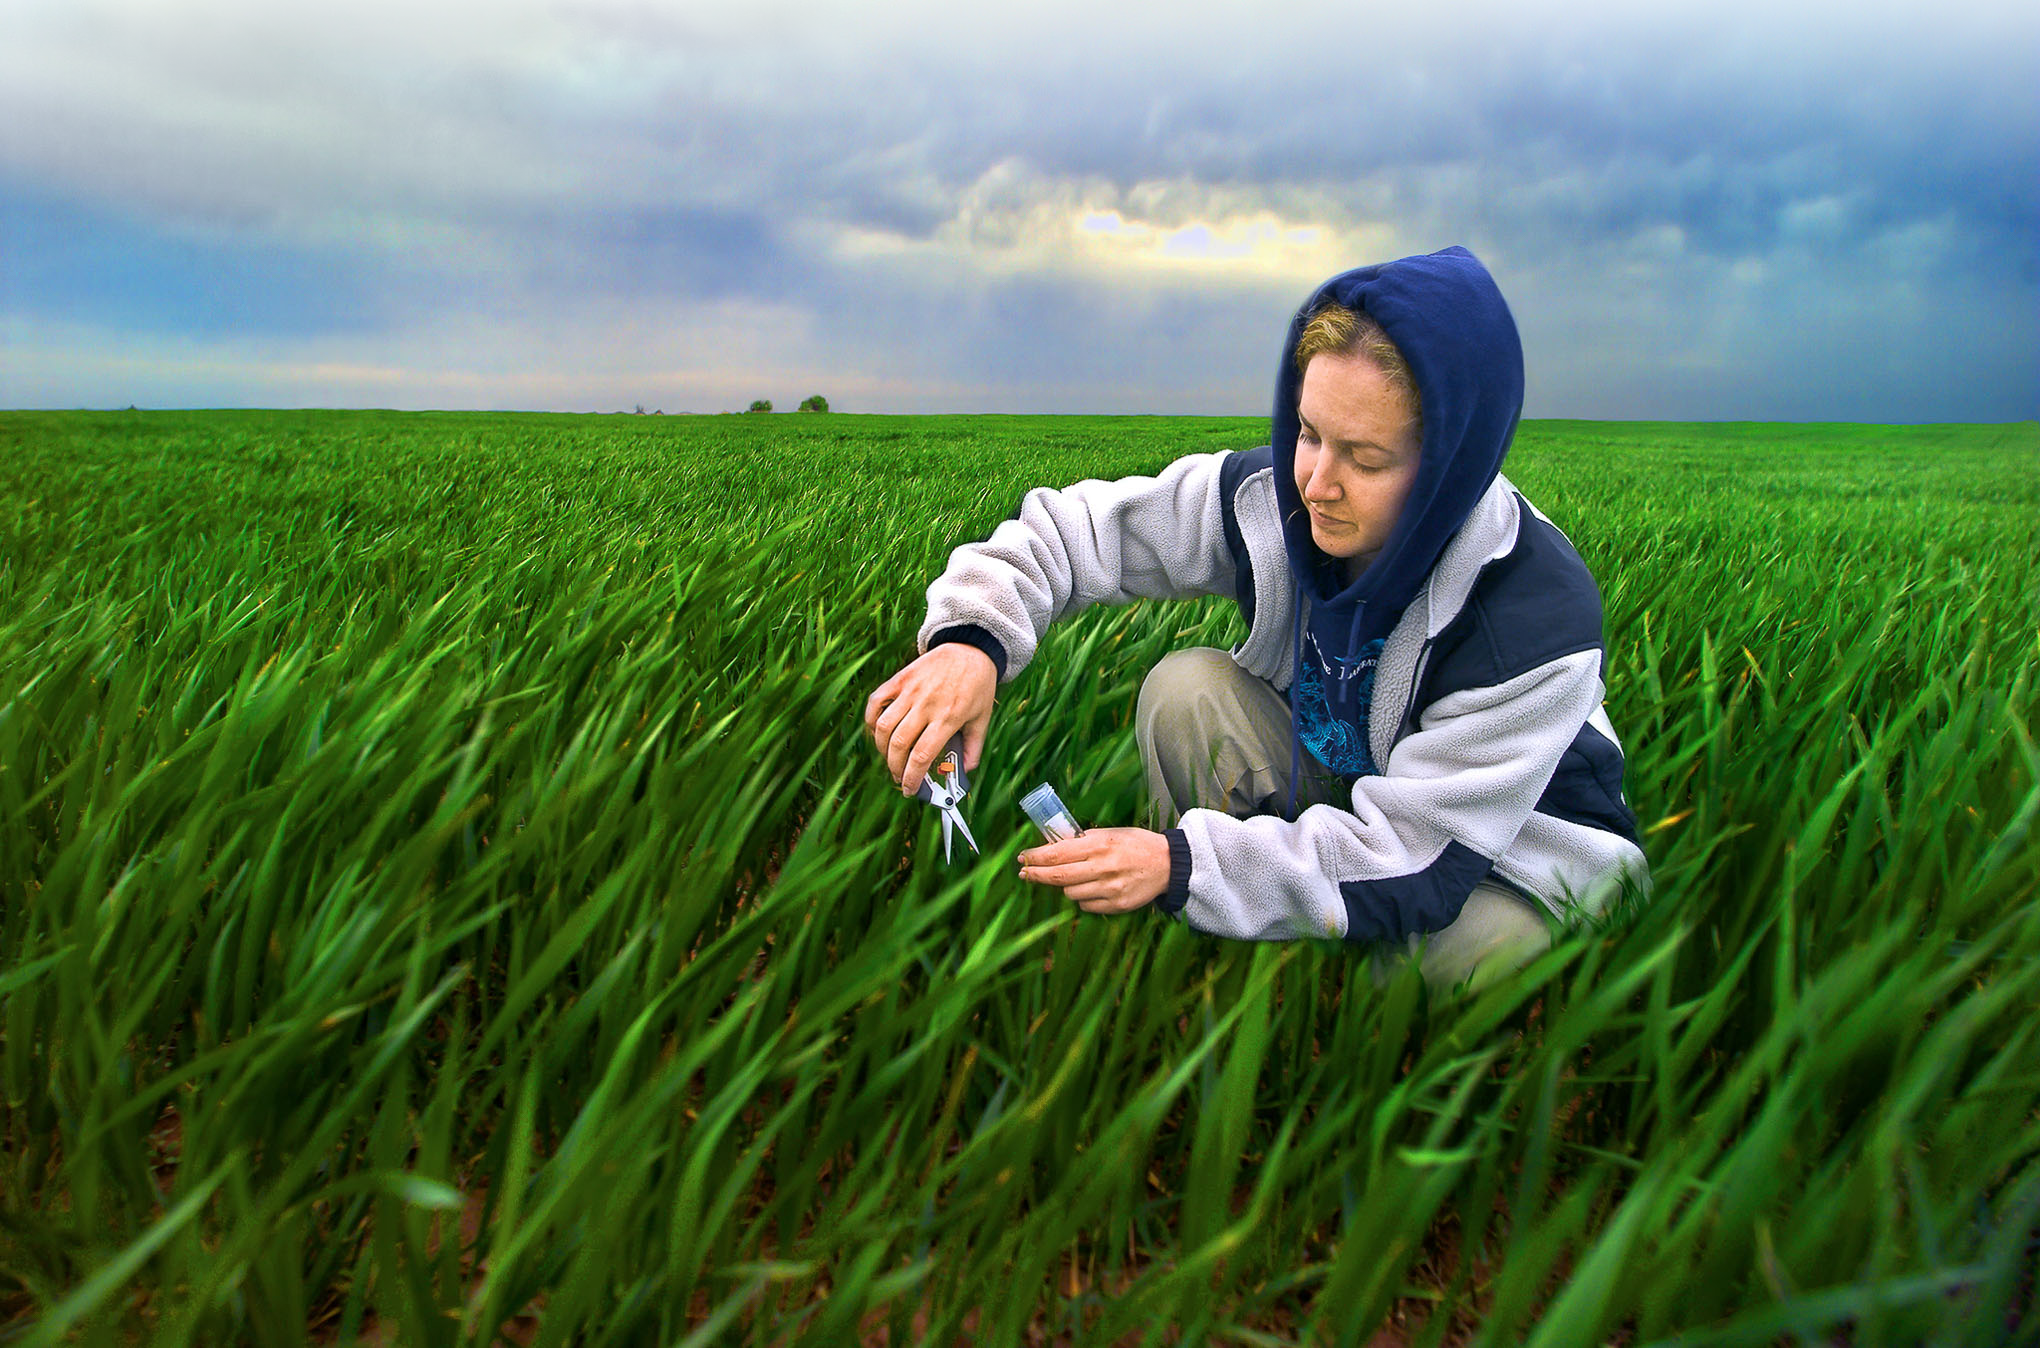 photo of woman collecting grass samples from a field